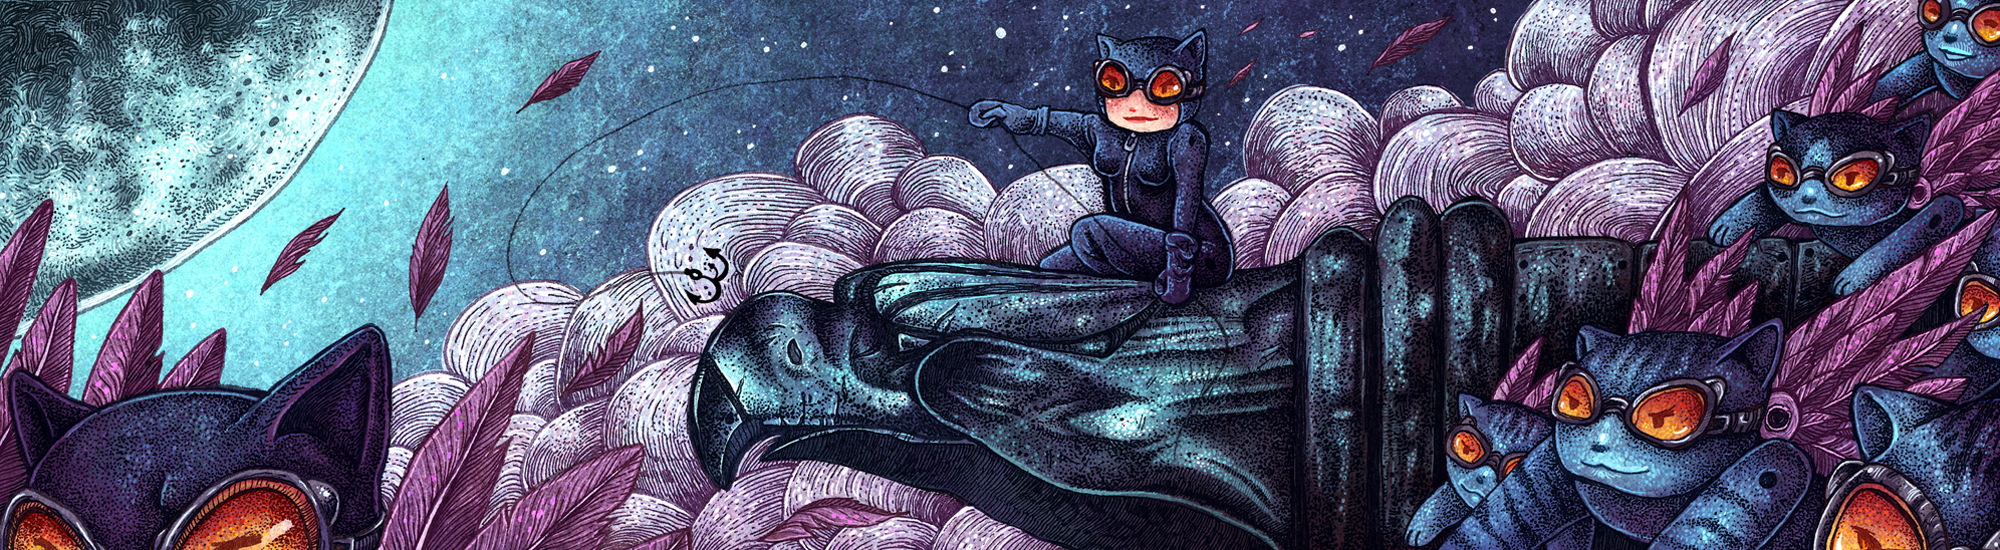 Catwoman And Her Minions by AngelaRizza